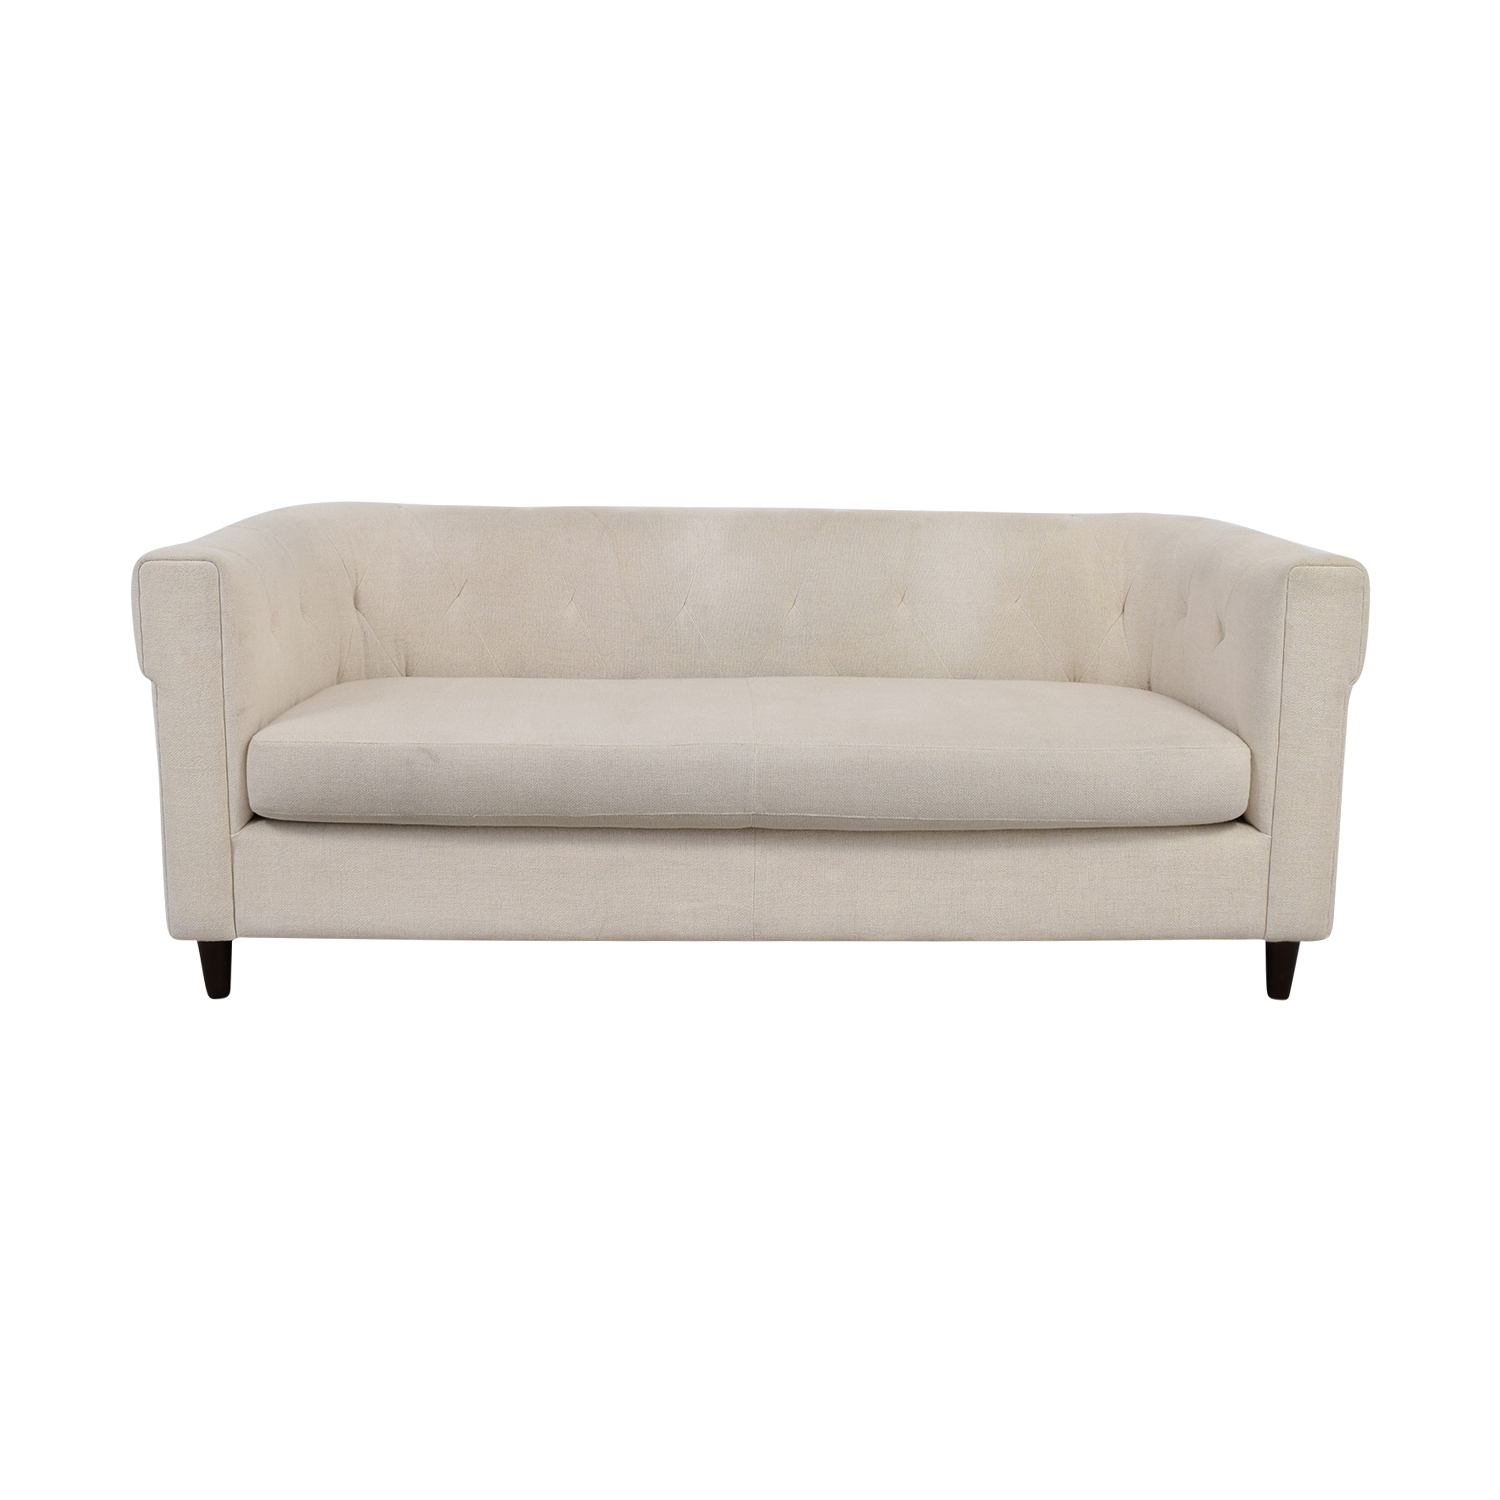 Sofas chester chester sofas compact sofa brown leather for Best west elm sofa